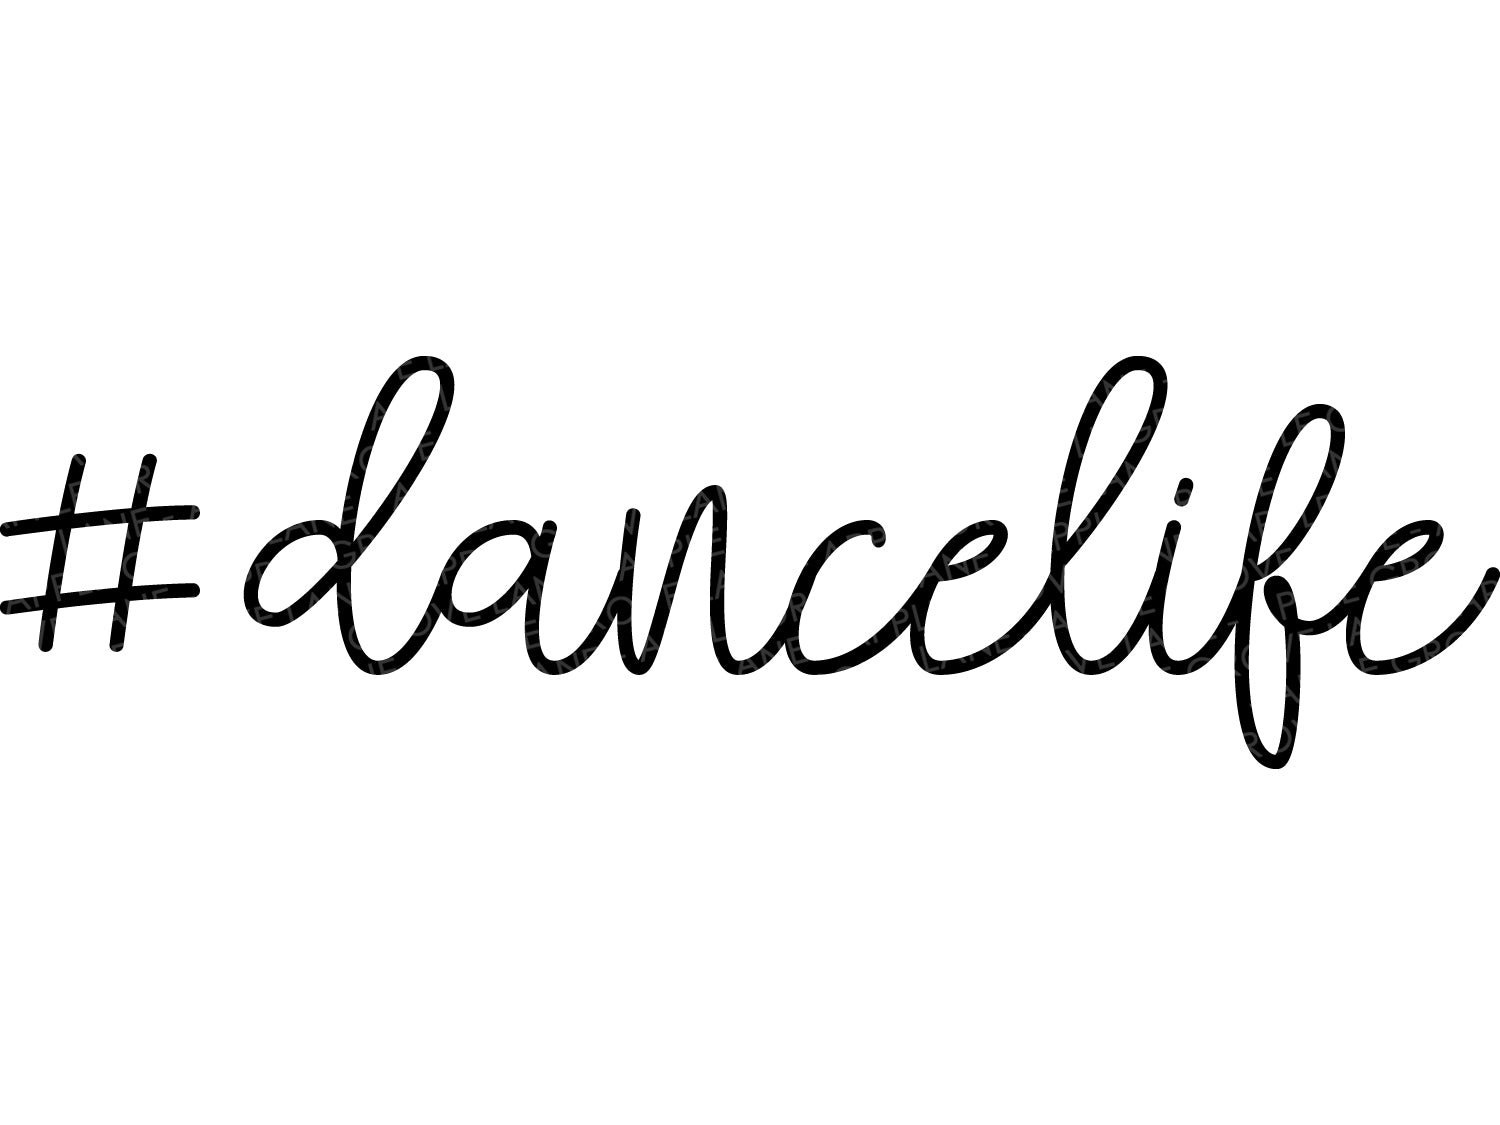 Dance SVG, #Dancelife Svg, Hashtag Dance Svg, Dancer Svg, Dancing Svg, Dance Life SVG, Dance Team Svg, Drill Svg, Ballet Svg Eps Dxf Png